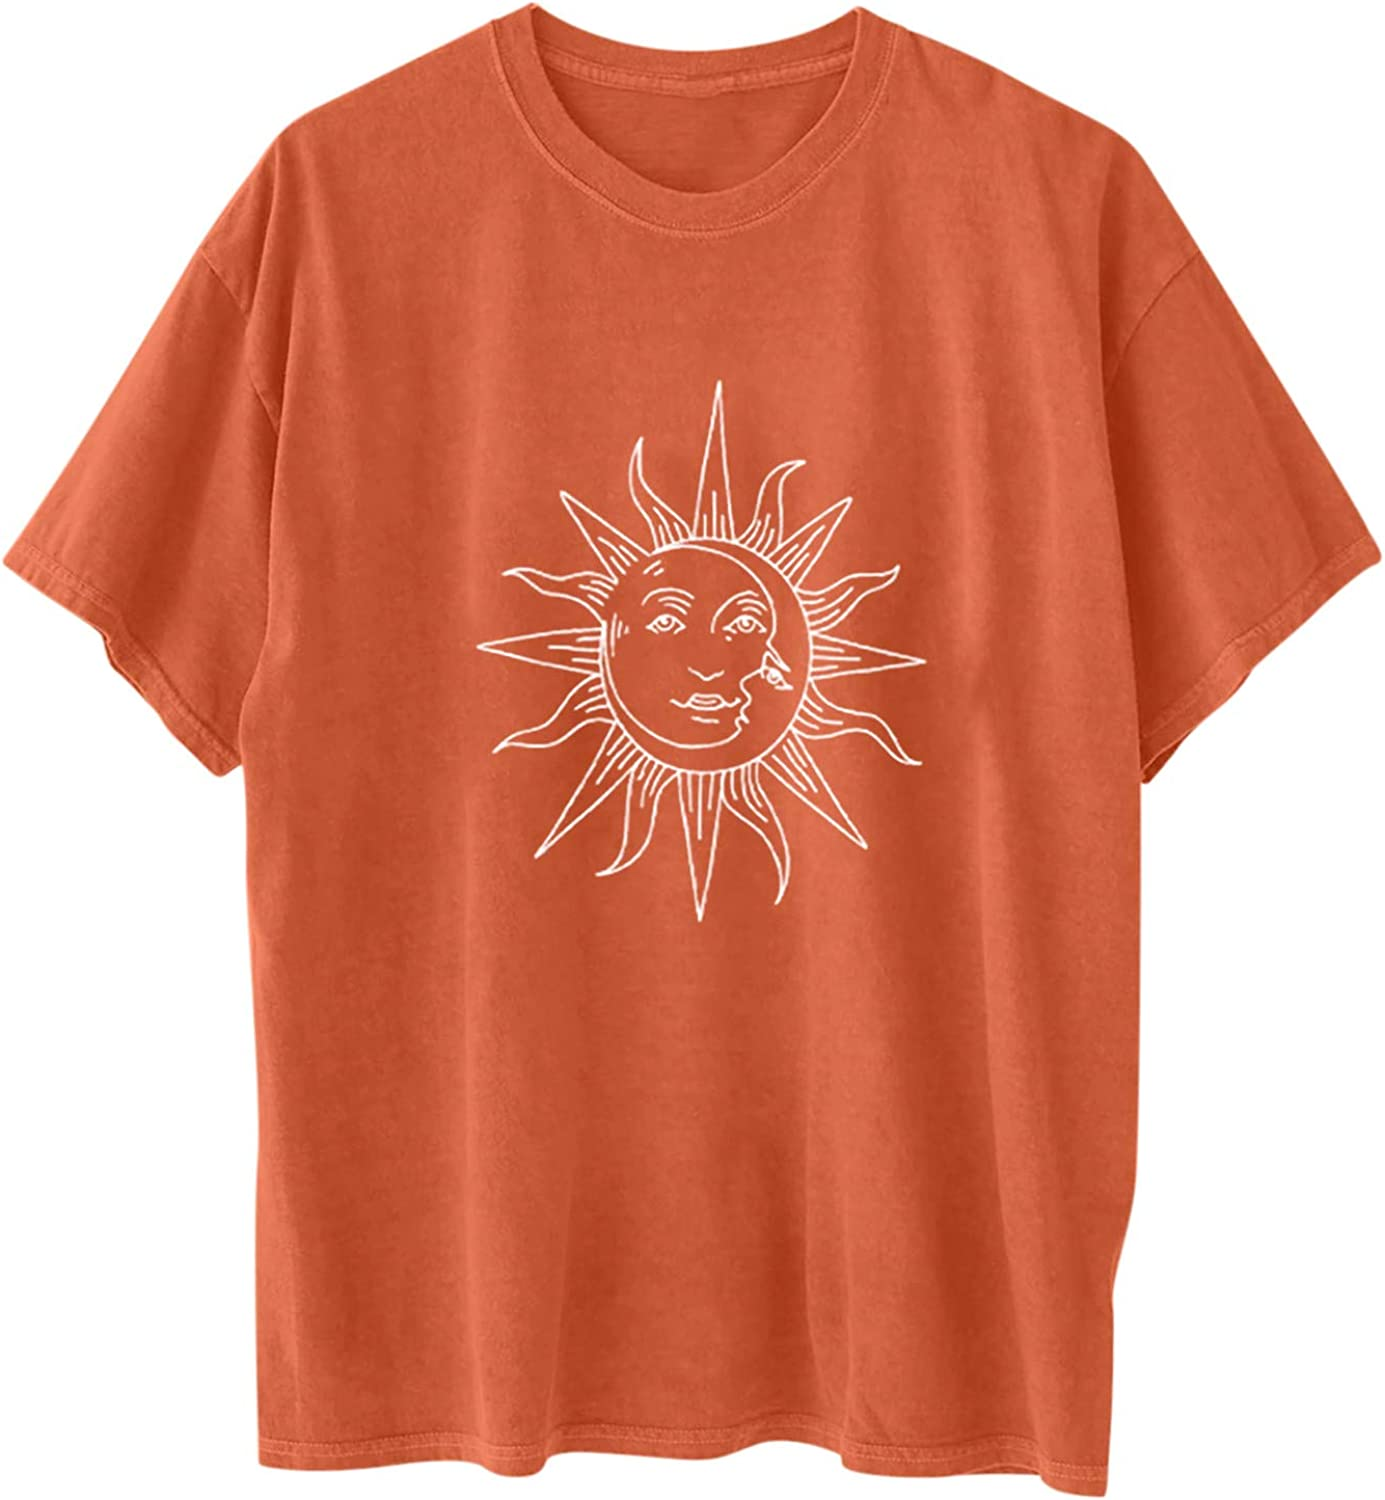 Raleigh Mall Gemira Vintage Shirts for Women Graphic and online shopping Sun Tshirt Tees Moon